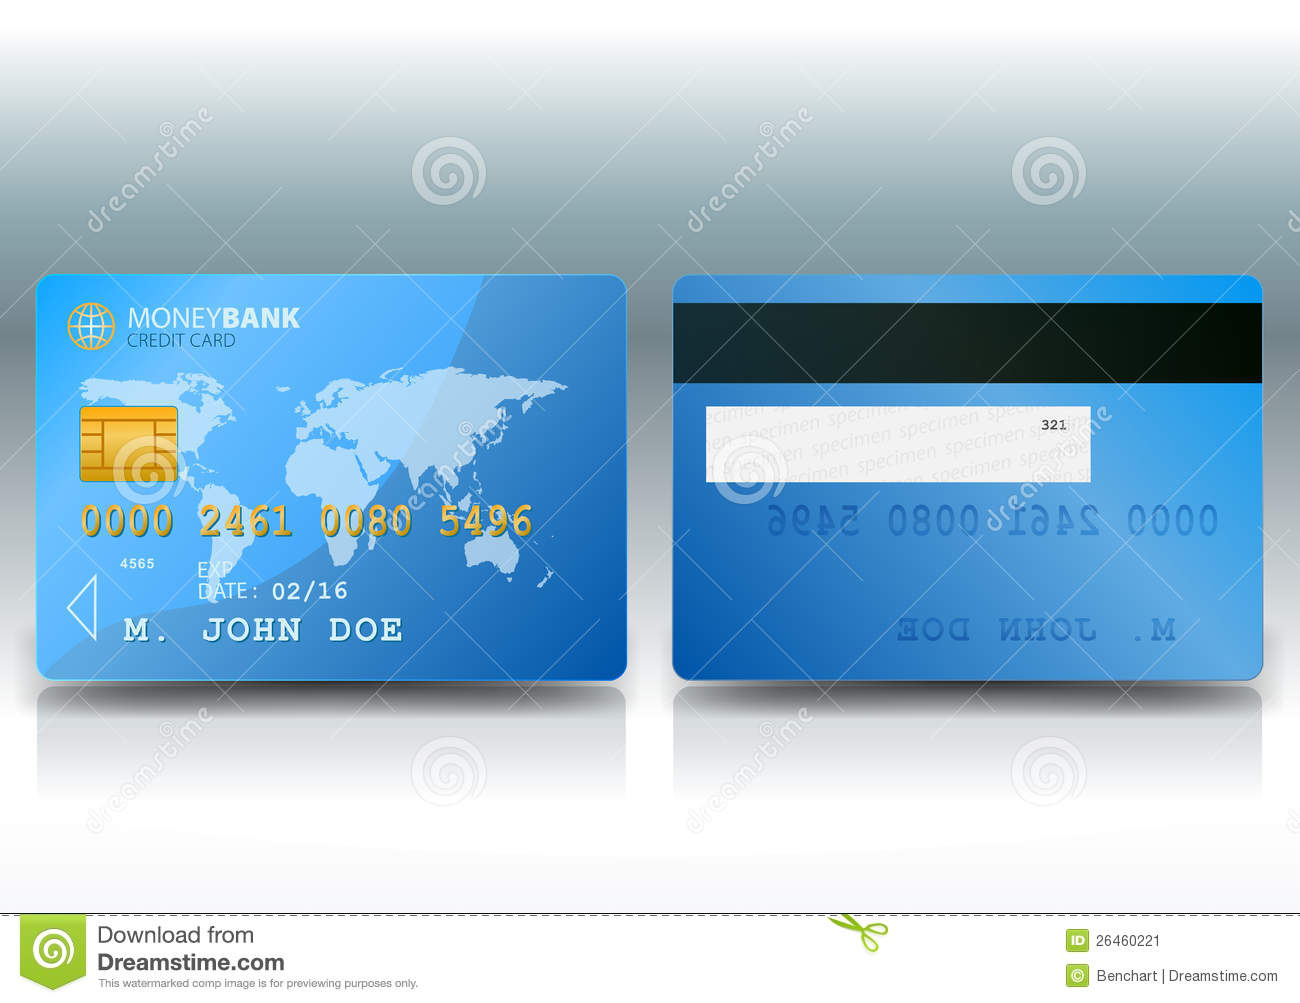 Credit Card Sample Stock Image - Image: 26460221